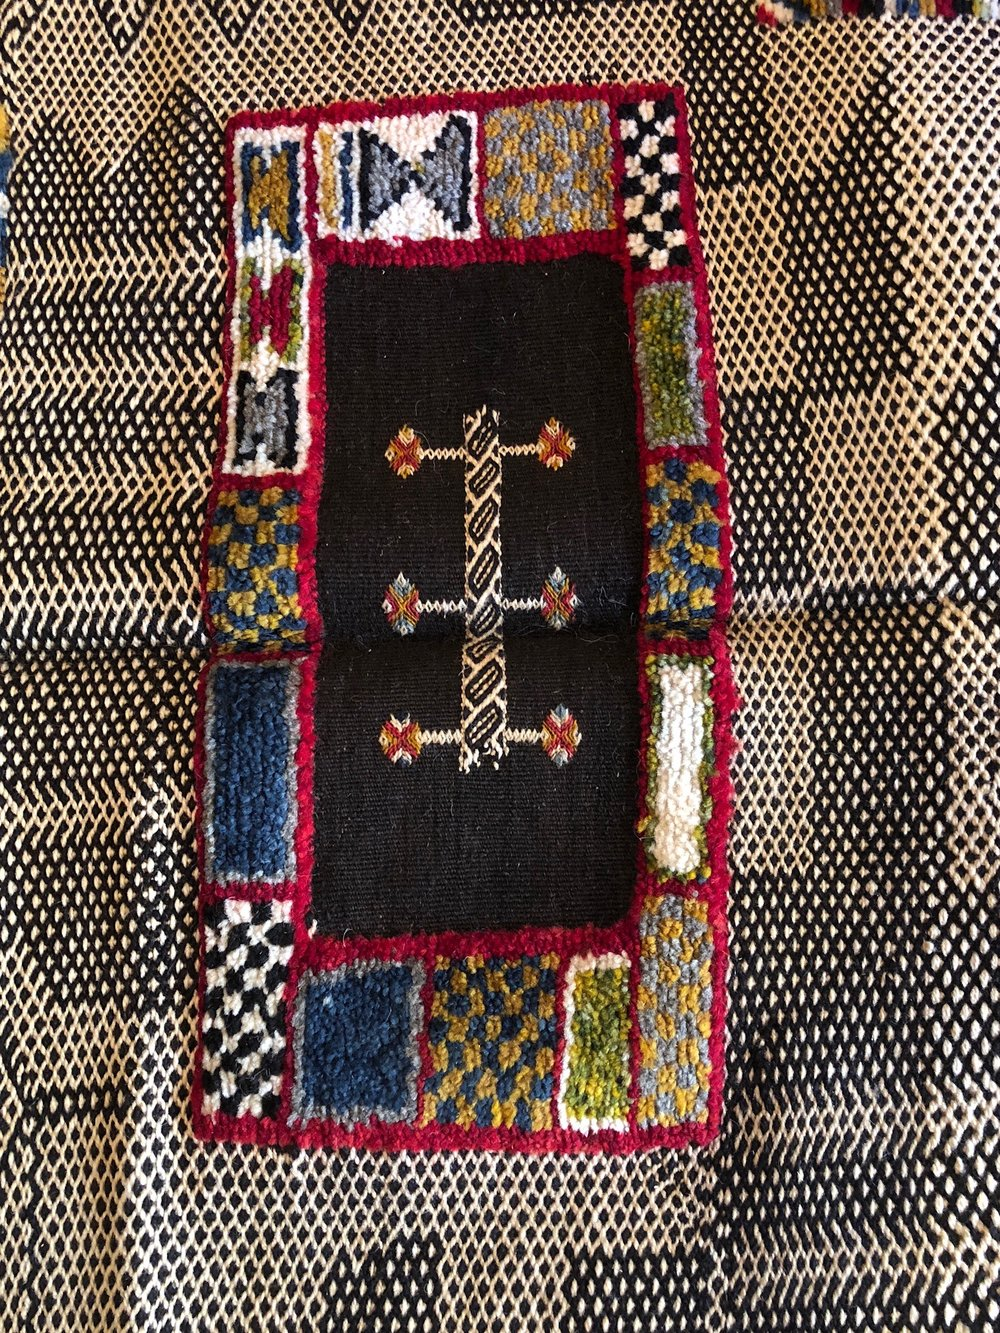 A traditional Berber symbol within the rug design.